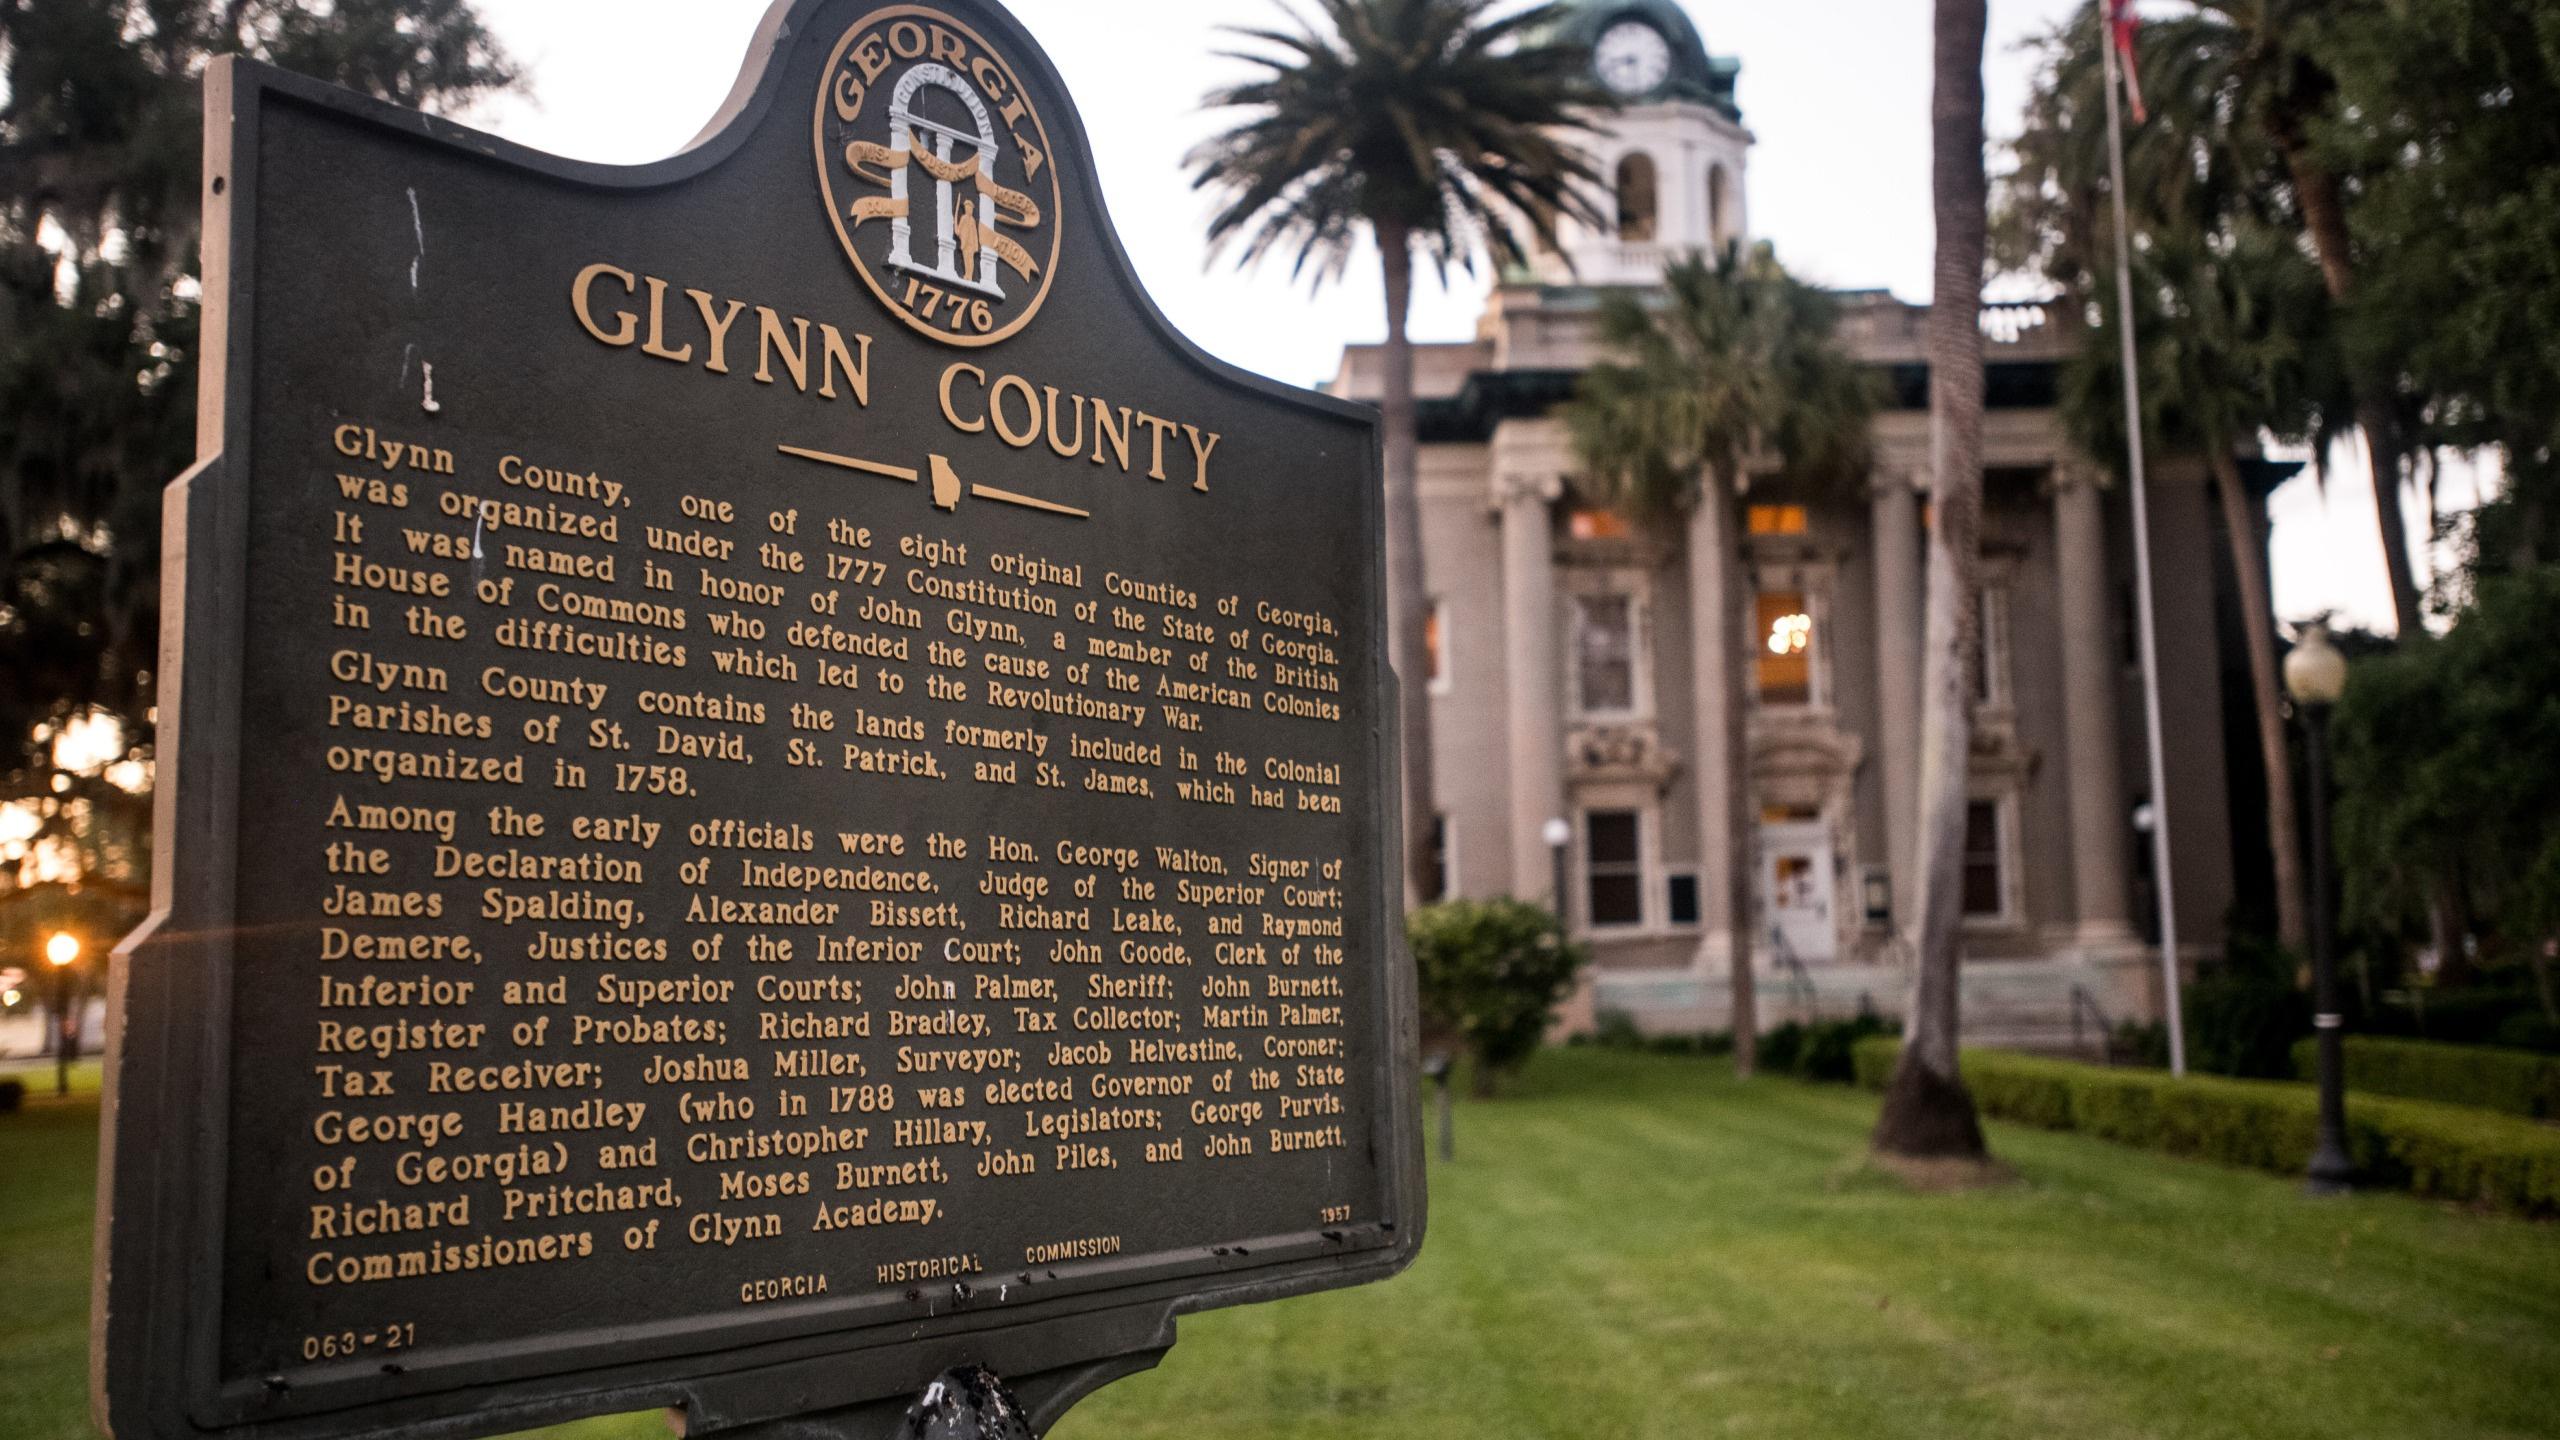 A marker stands in front of the historic Glynn County courthouse May 6, 2020 in Brunswick, Georgia. (Sean Rayford/Getty Images)